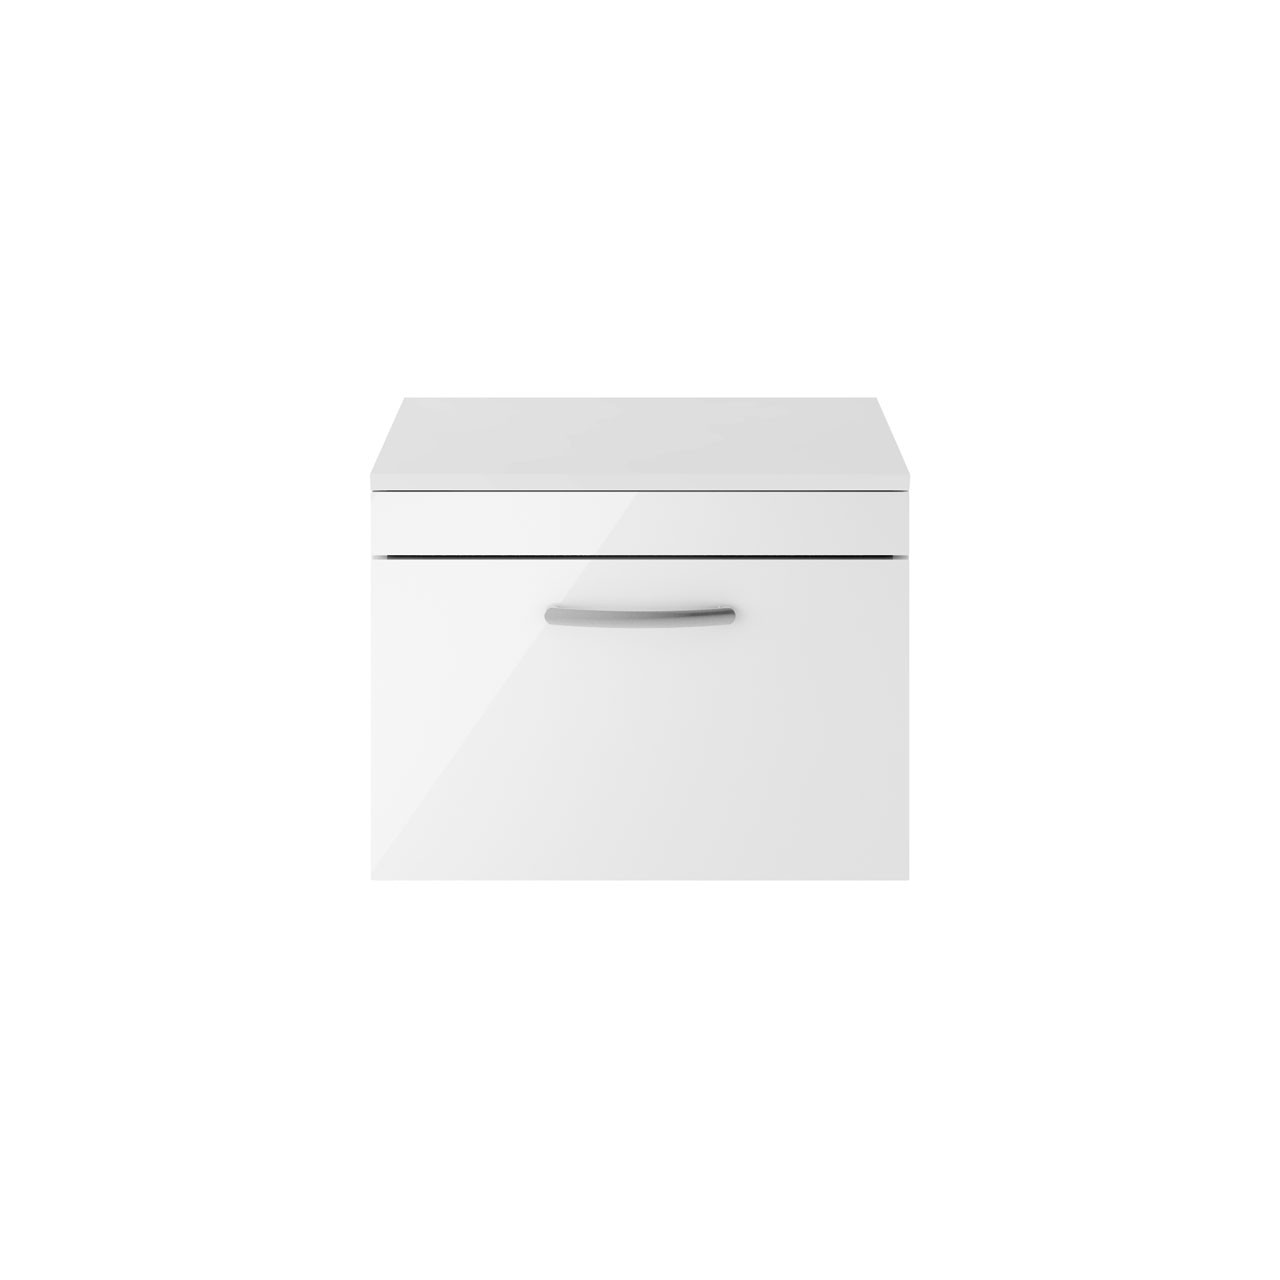 Premier Athena Gloss White 600mm Wall Hung Single Drawer Vanity Unit with Worktop - ATH041W